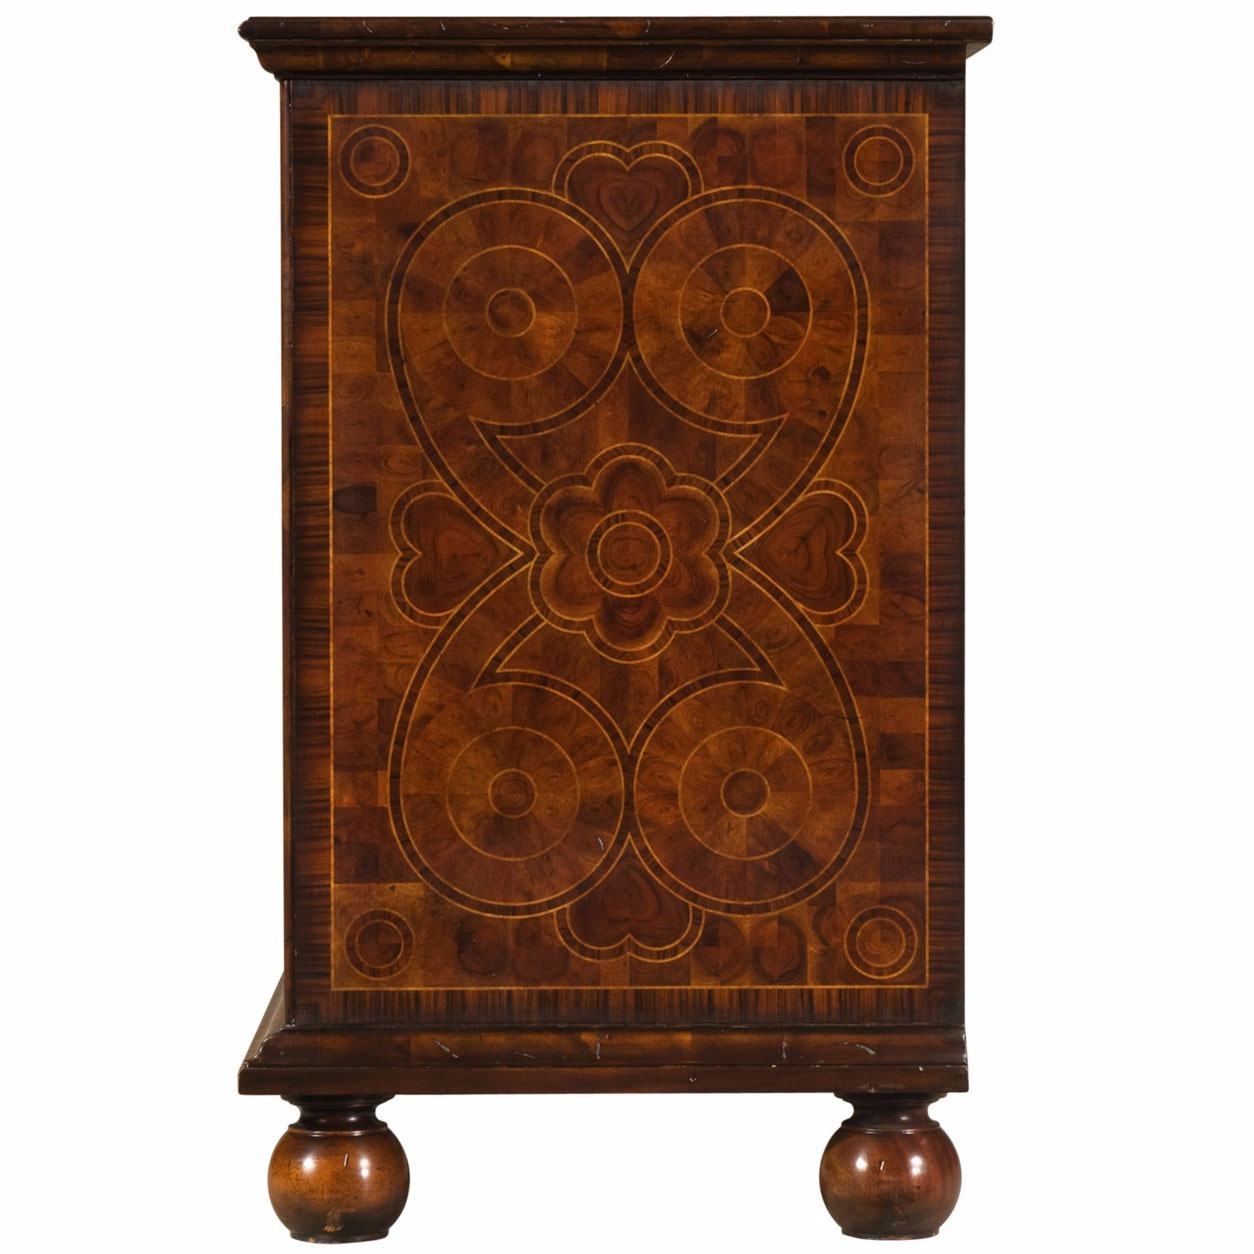 An oyster veneered chest of drawers